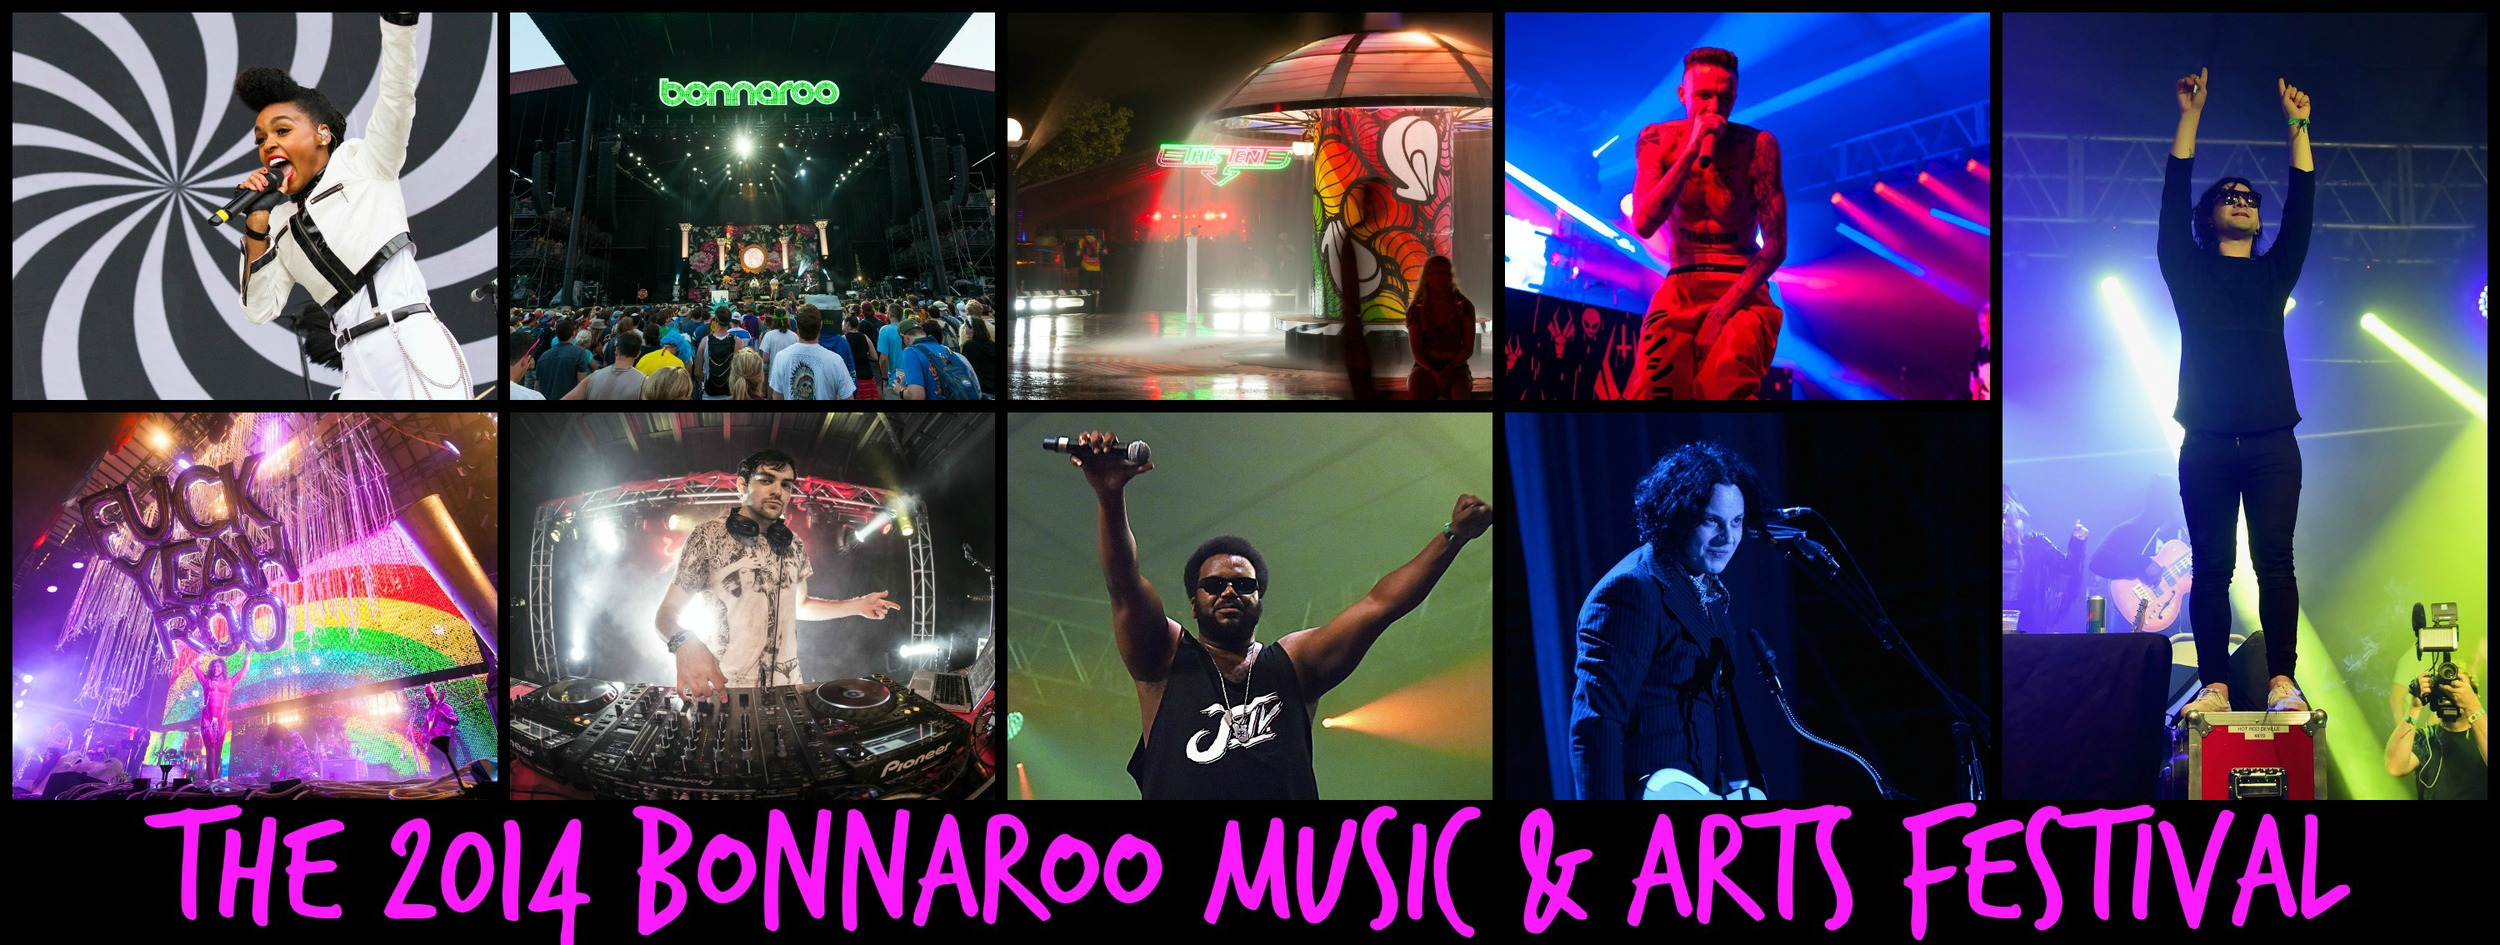 JUNE 2014 - HEATHER ATTENDED AND COVERED THE BONNAROO MUSIC & ARTS FESTIVAL FOR DO615